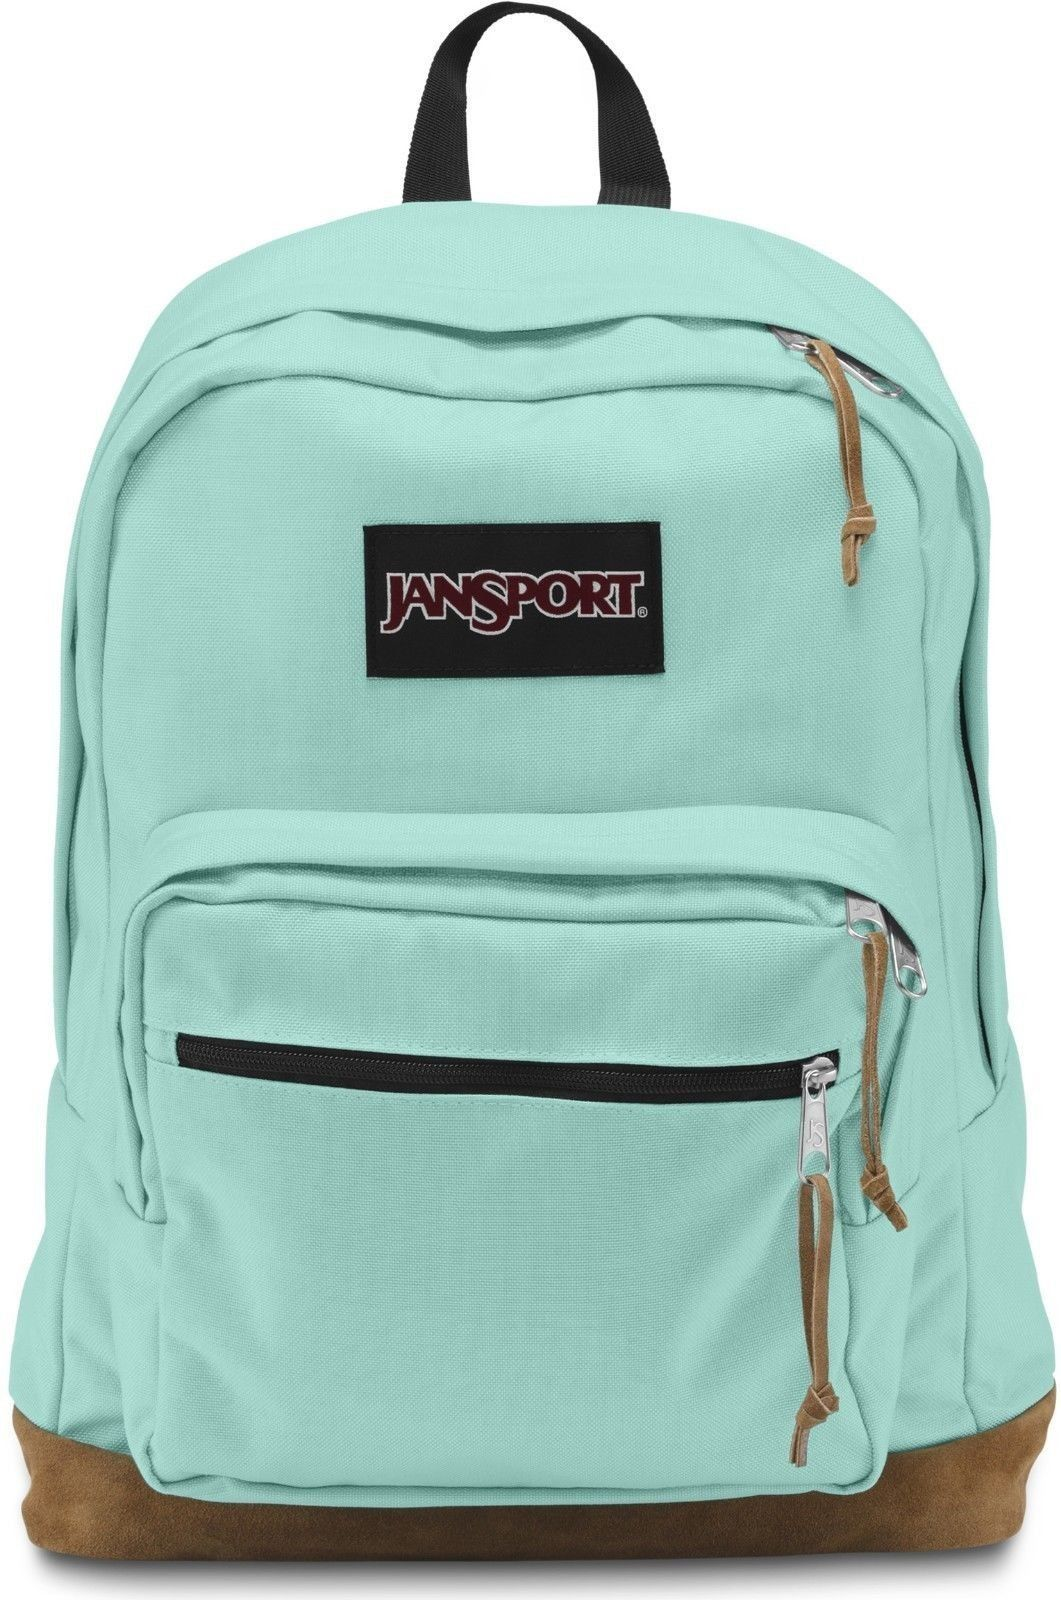 Where Can I Buy Jansport Backpacks HoEaCVaT